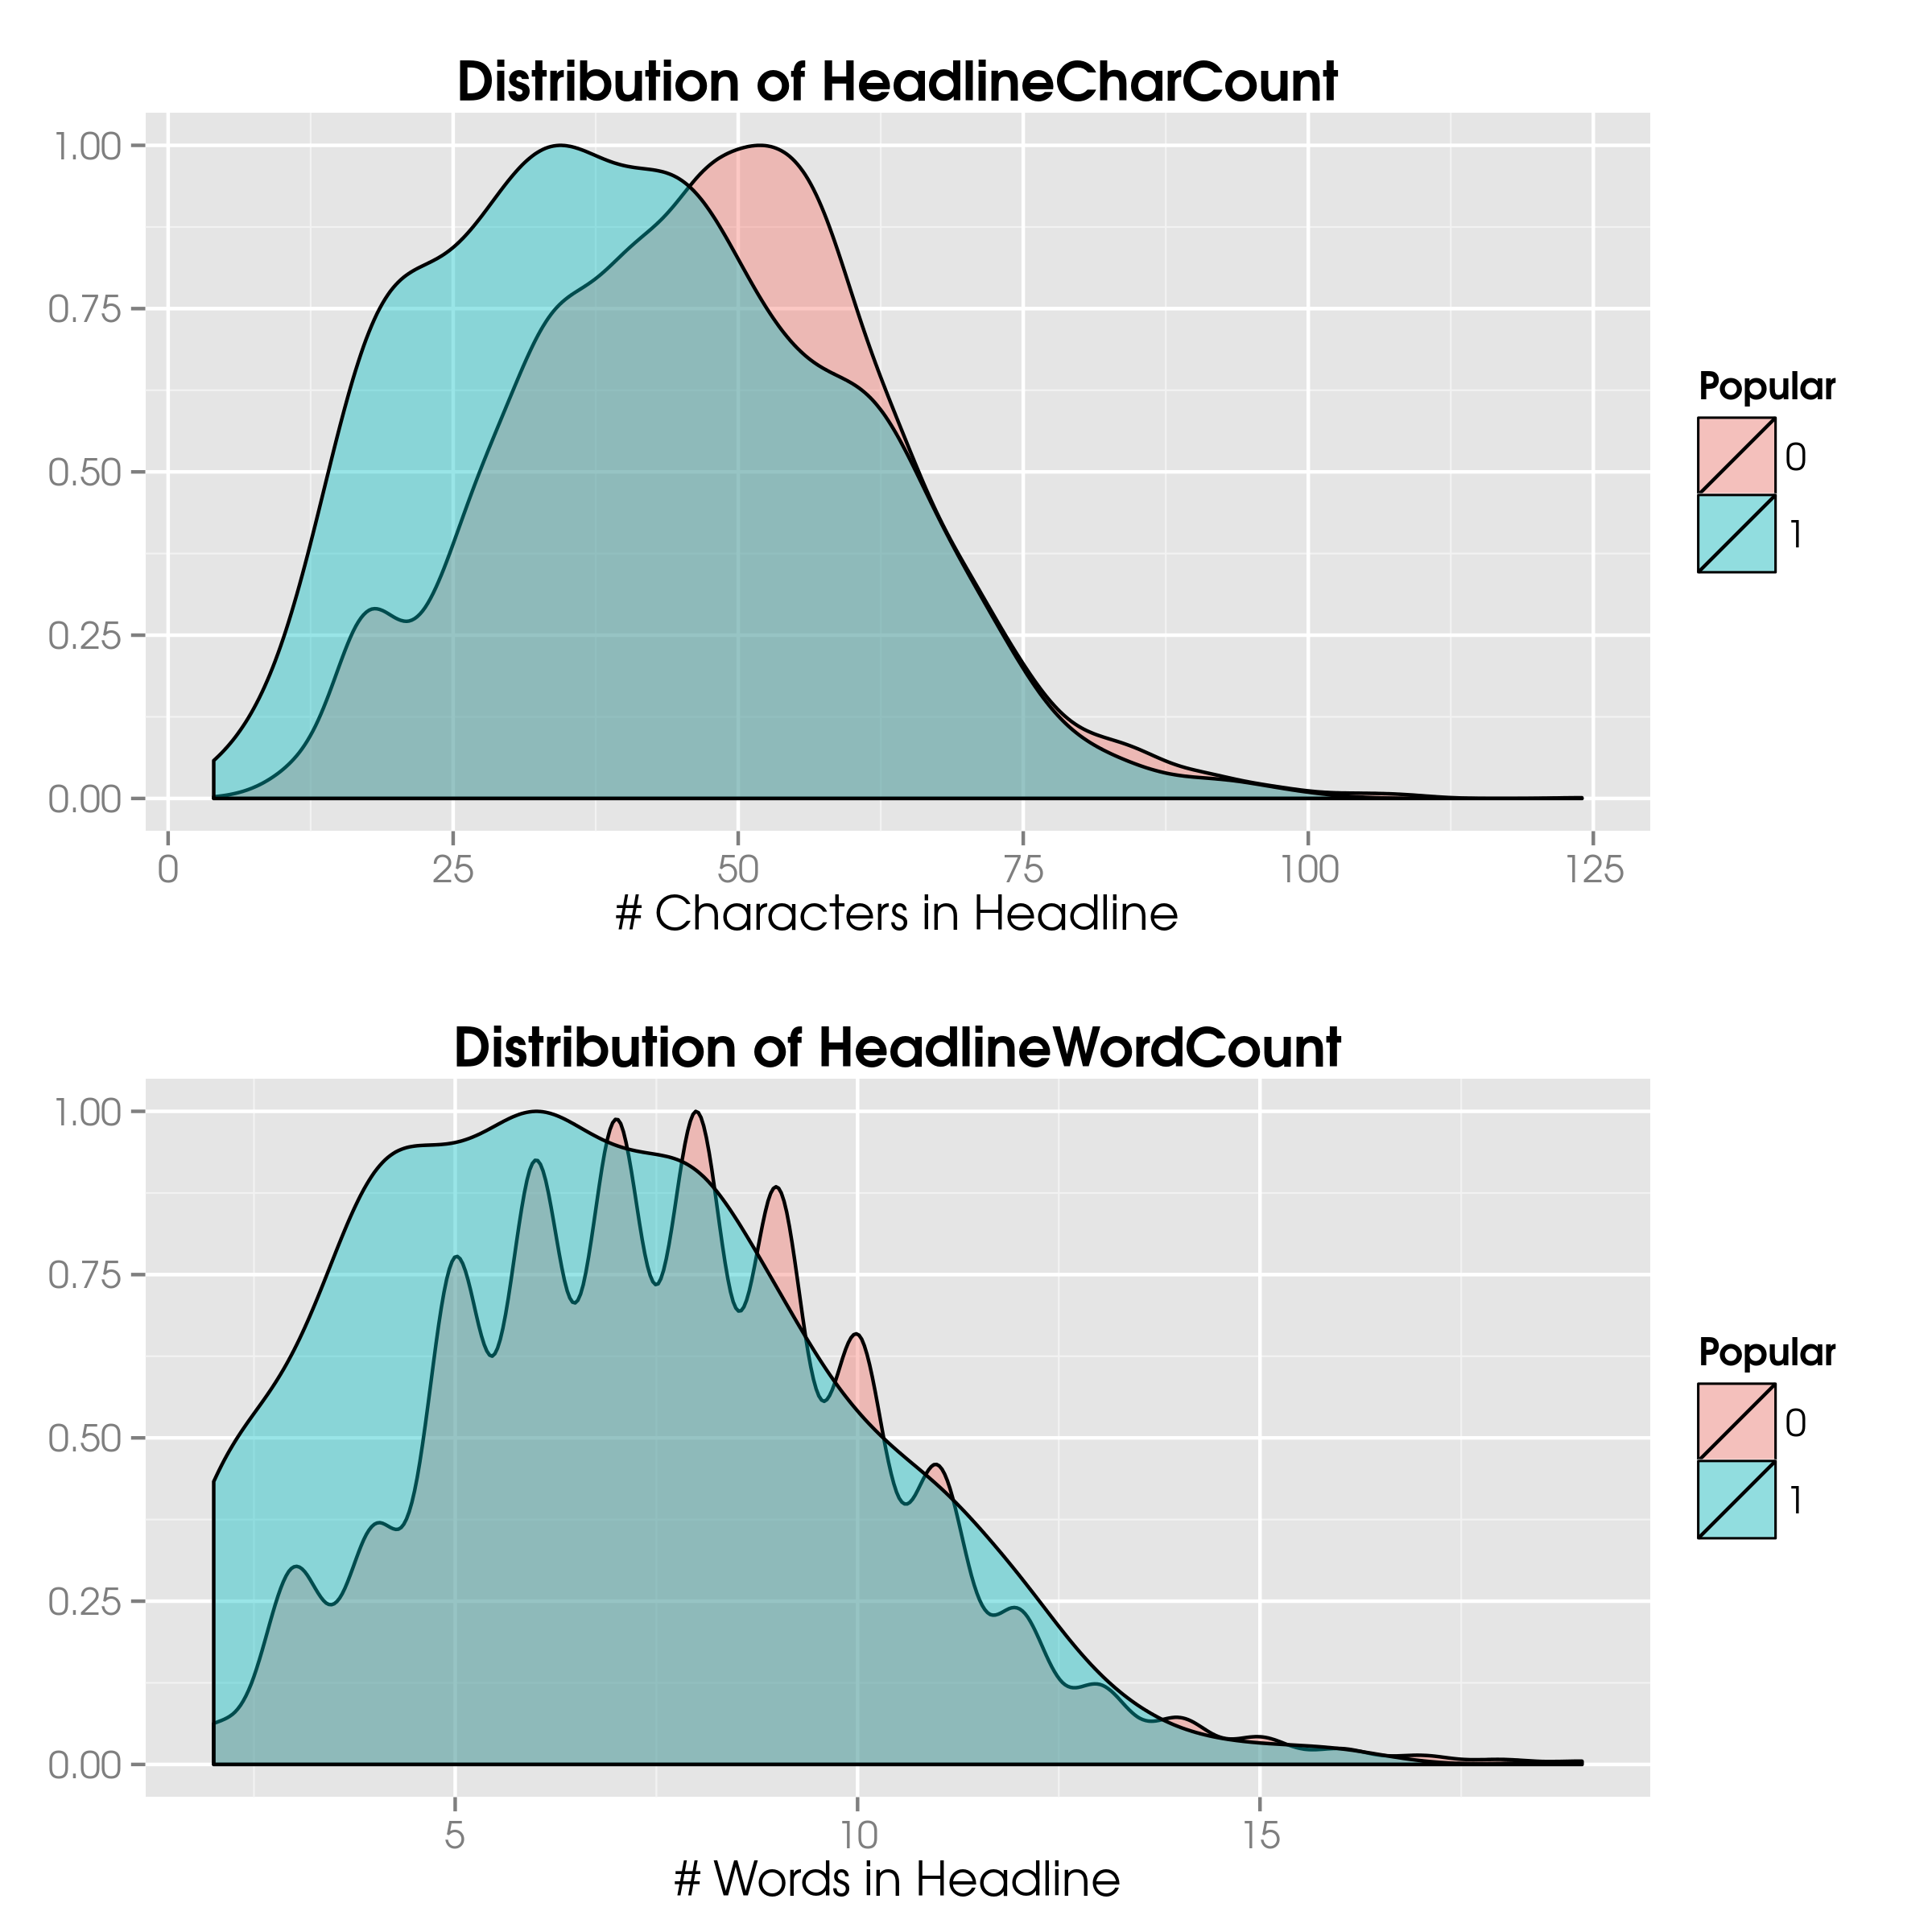 The distributions of character and word counts for all headlines